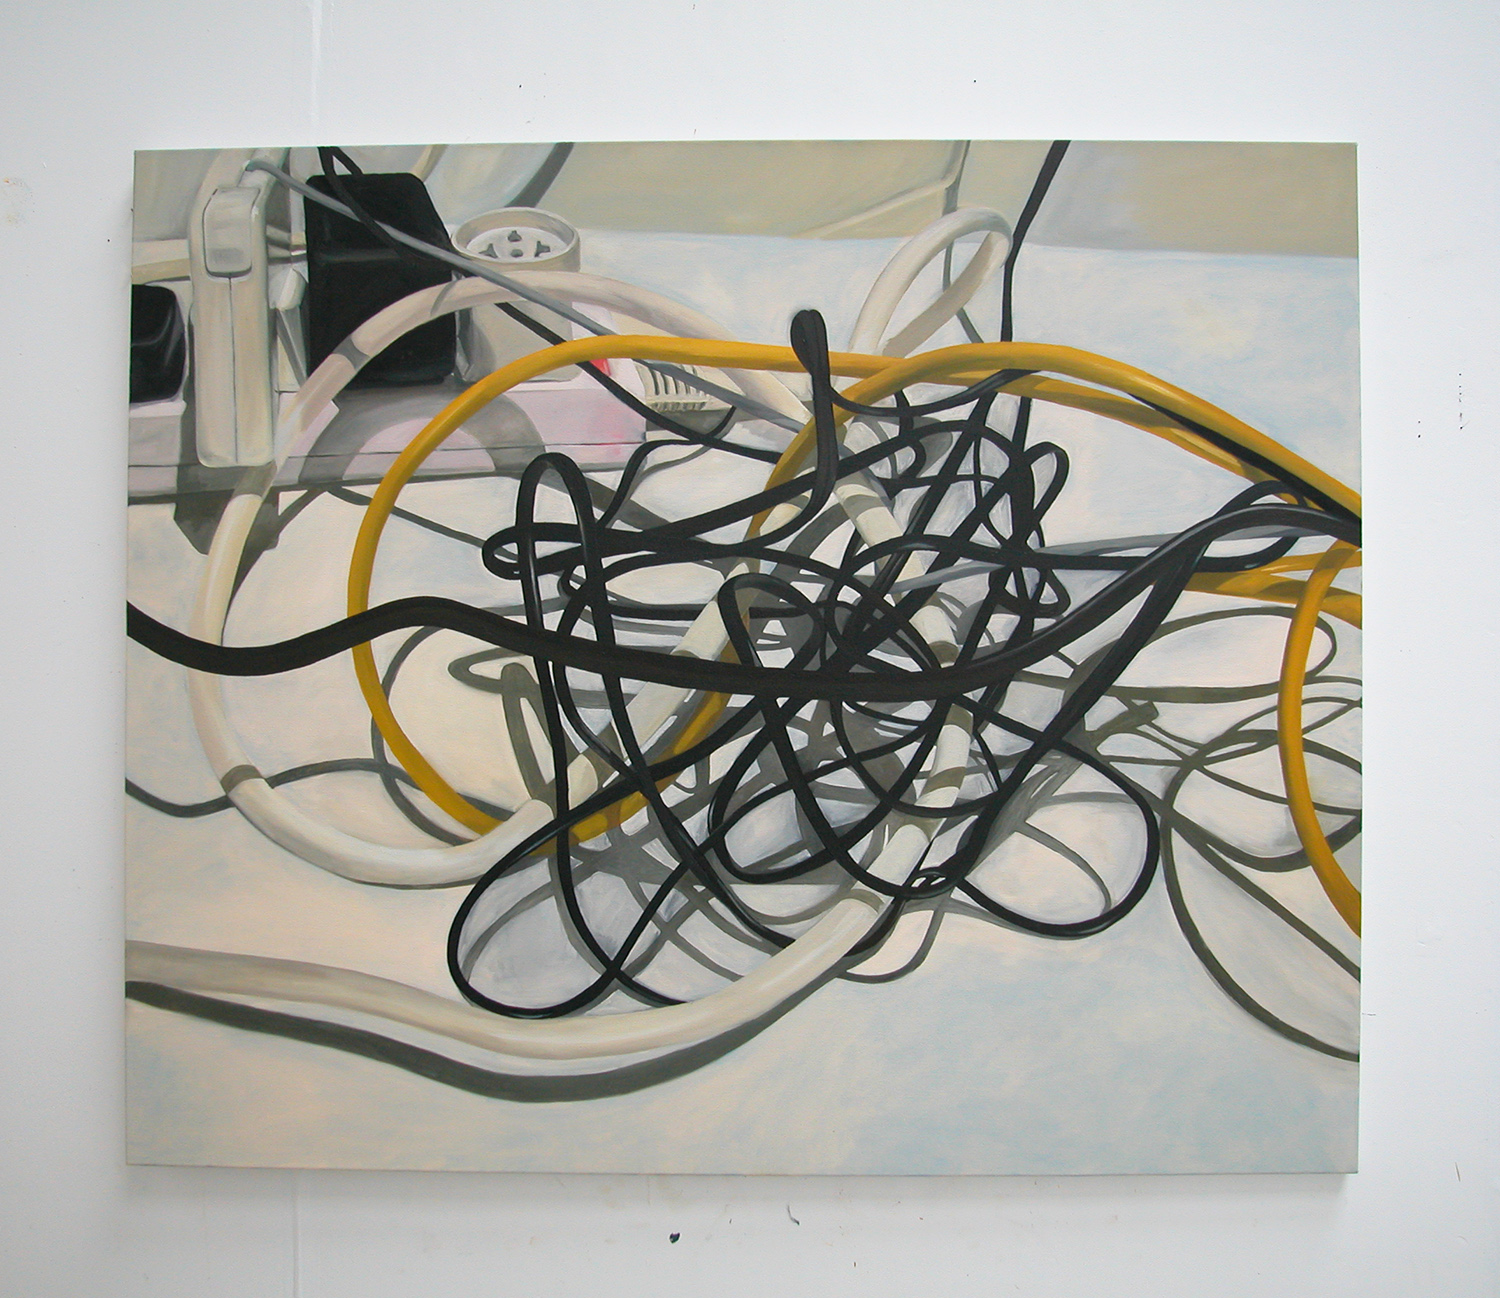 untitled (wires and lead), 2005  oil on canvas  50 x 60 in